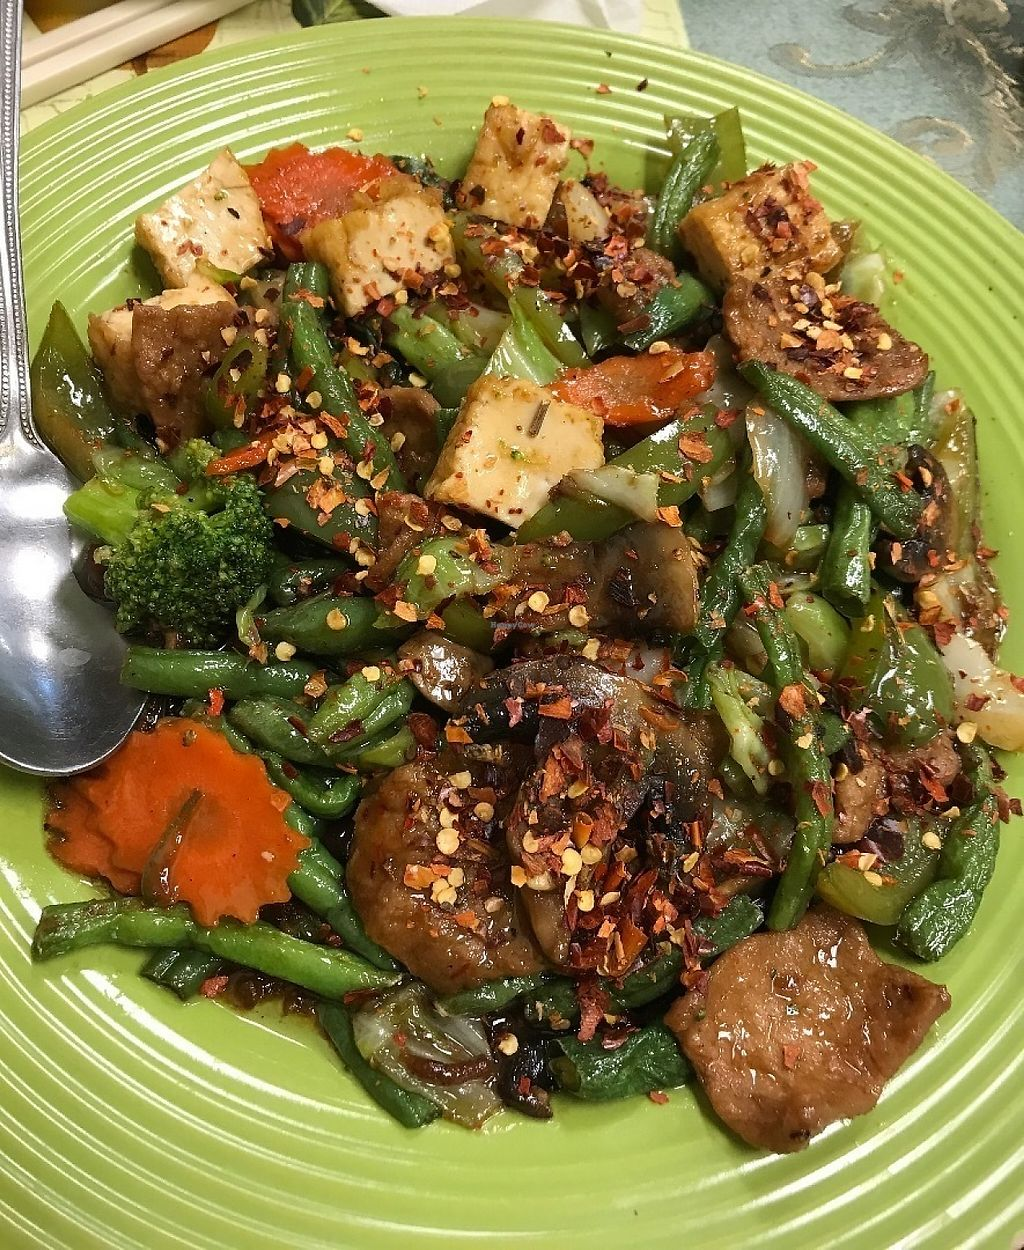 """Photo of CLOSED: Green Lotus Vegan  by <a href=""""/members/profile/Tigra220"""">Tigra220</a> <br/>Hot & Spicy Green Beans w/ soy chicken  <br/> May 29, 2017  - <a href='/contact/abuse/image/57012/264003'>Report</a>"""